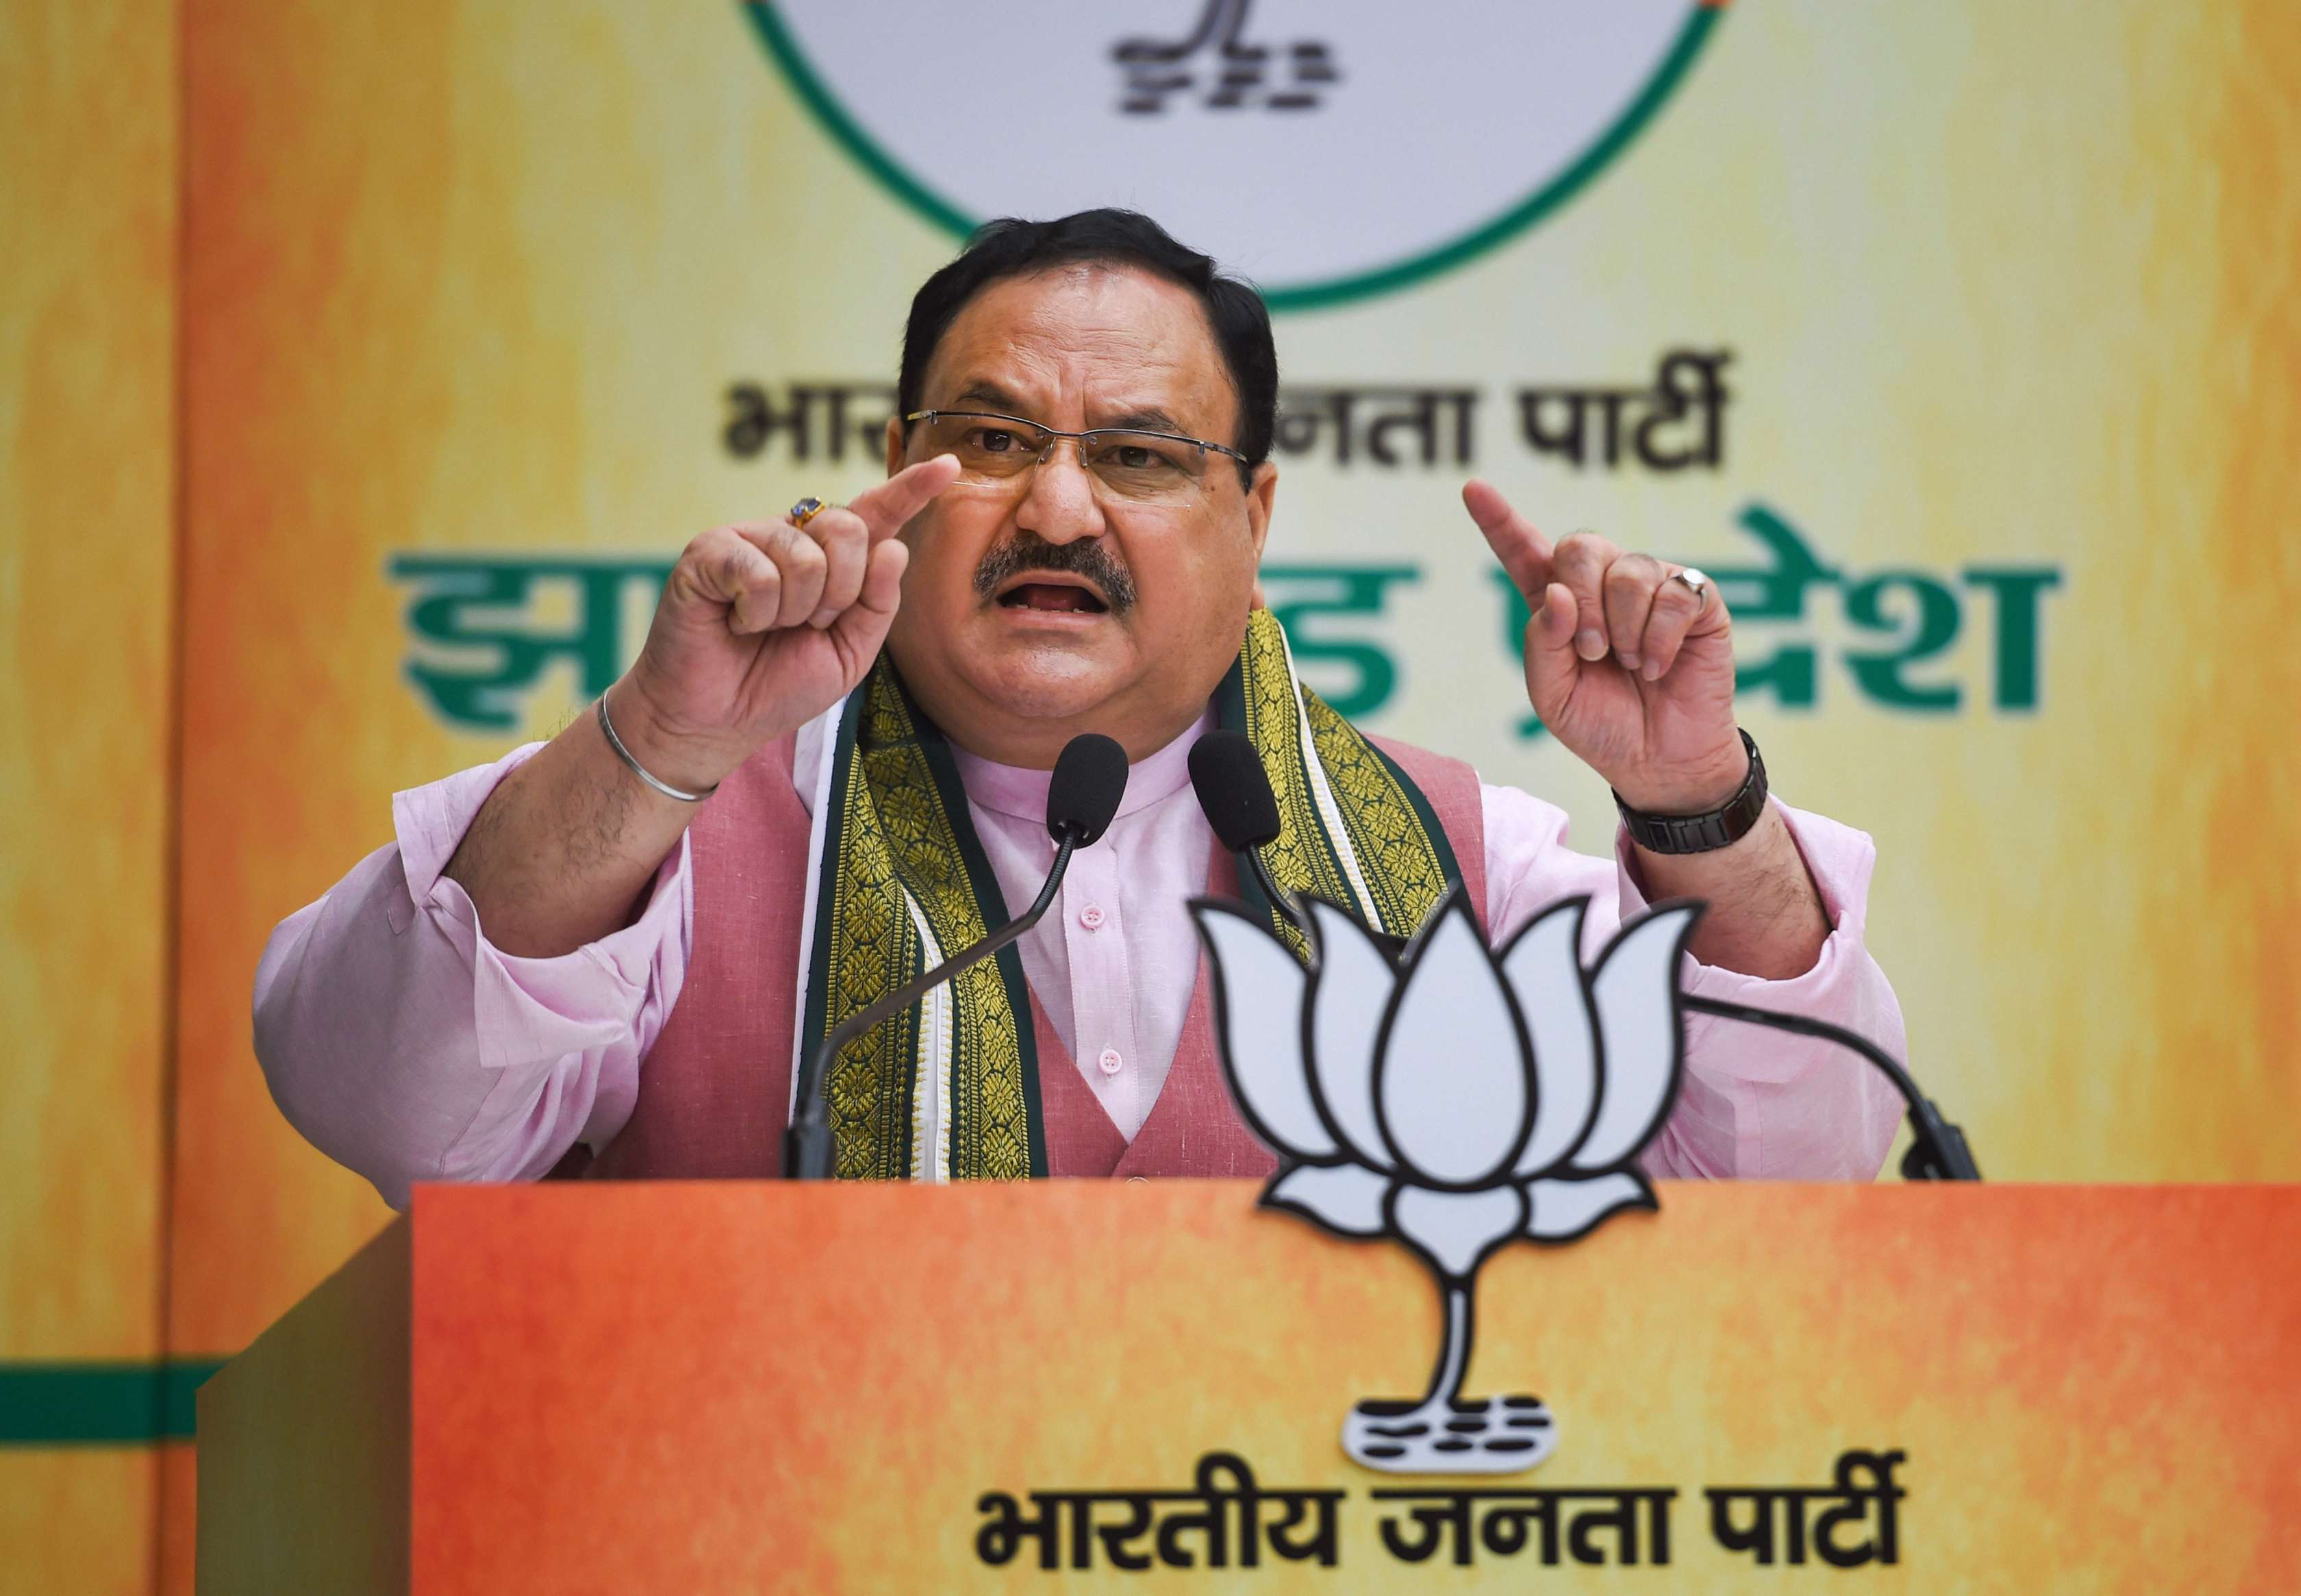 BJP chief J.P. Nadda during an event to inaugurate party's 8 district offices in Jharkhand, at BJP HQ in New Delhi, Tuesday, July 28, 2020.